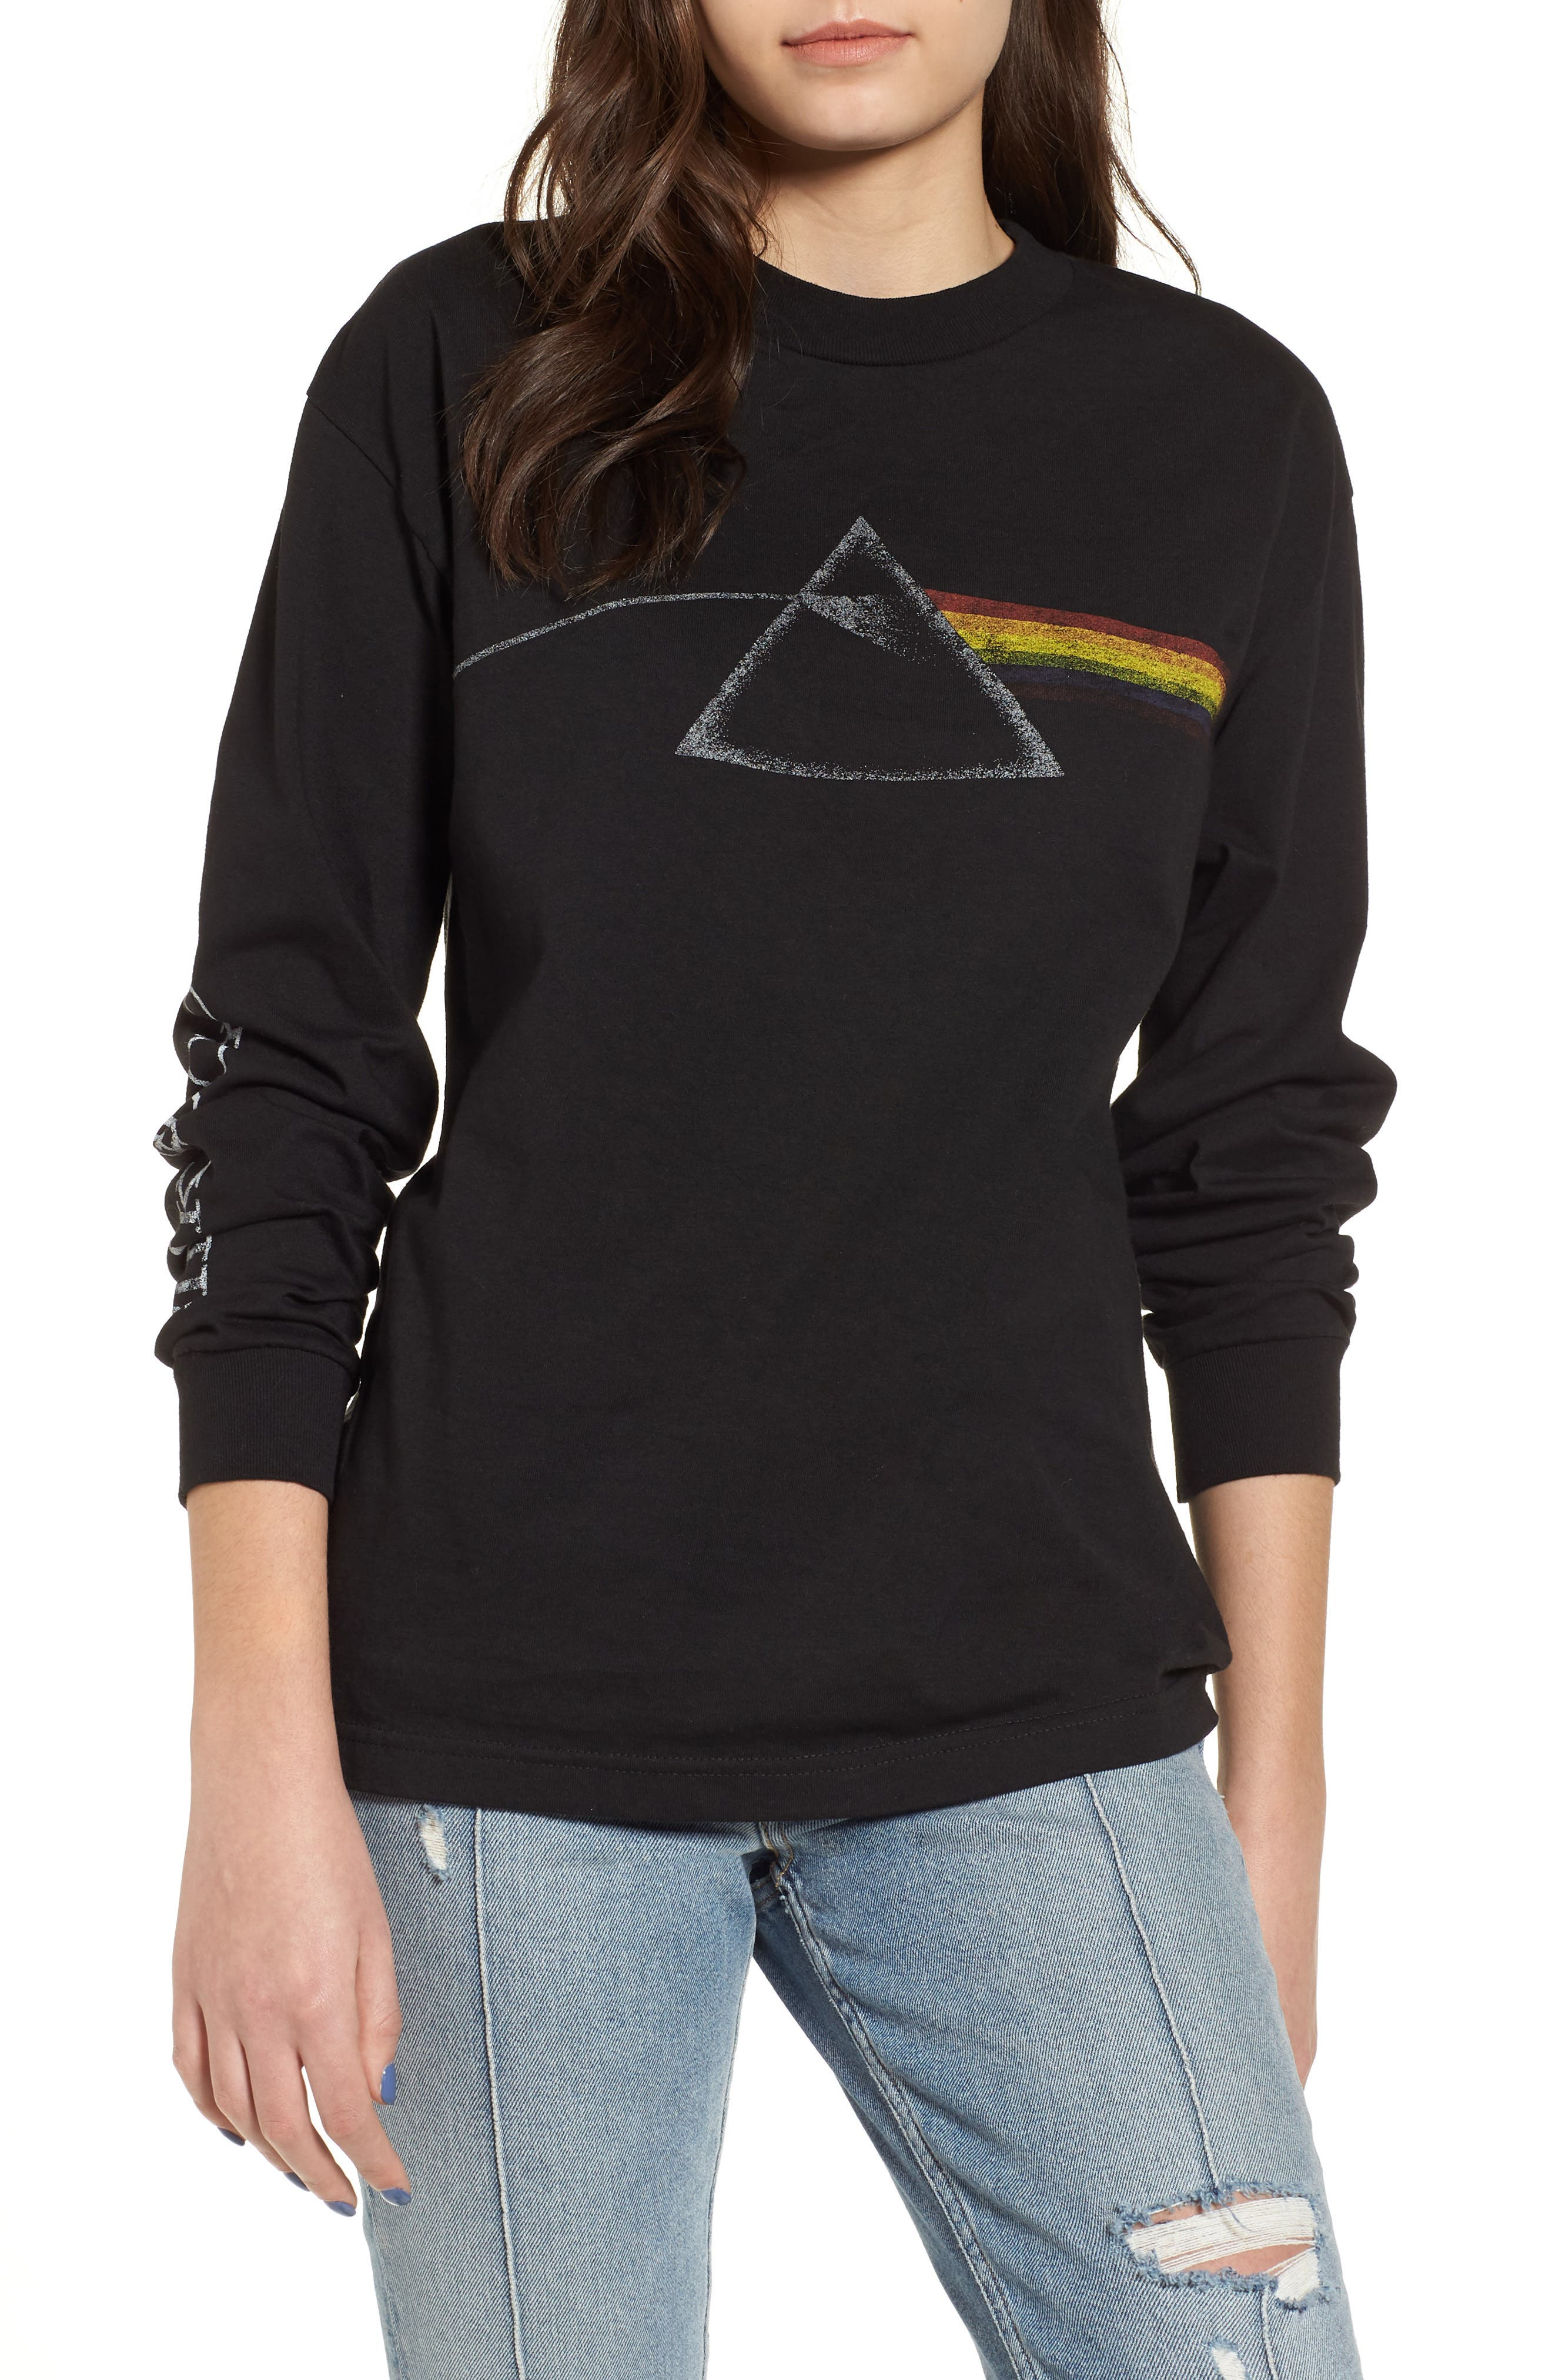 Day by Daydreamer Pink Floyd Tee